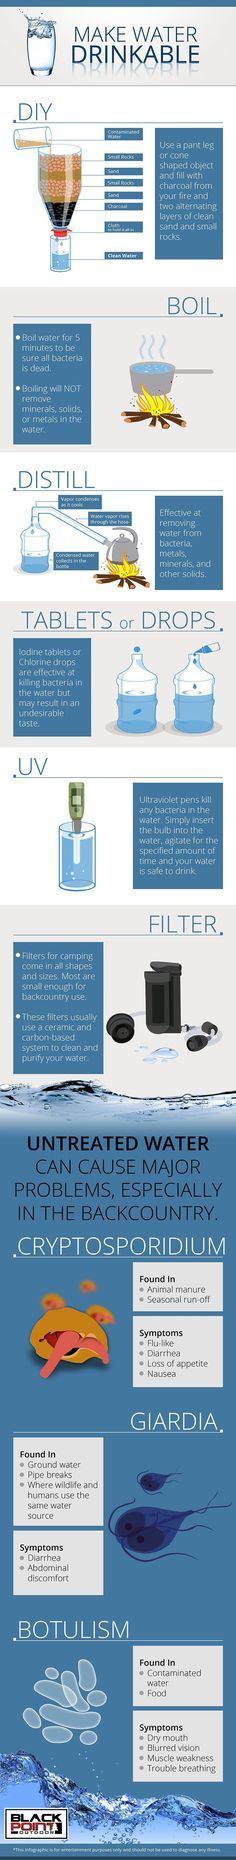 make water drinkable infographic